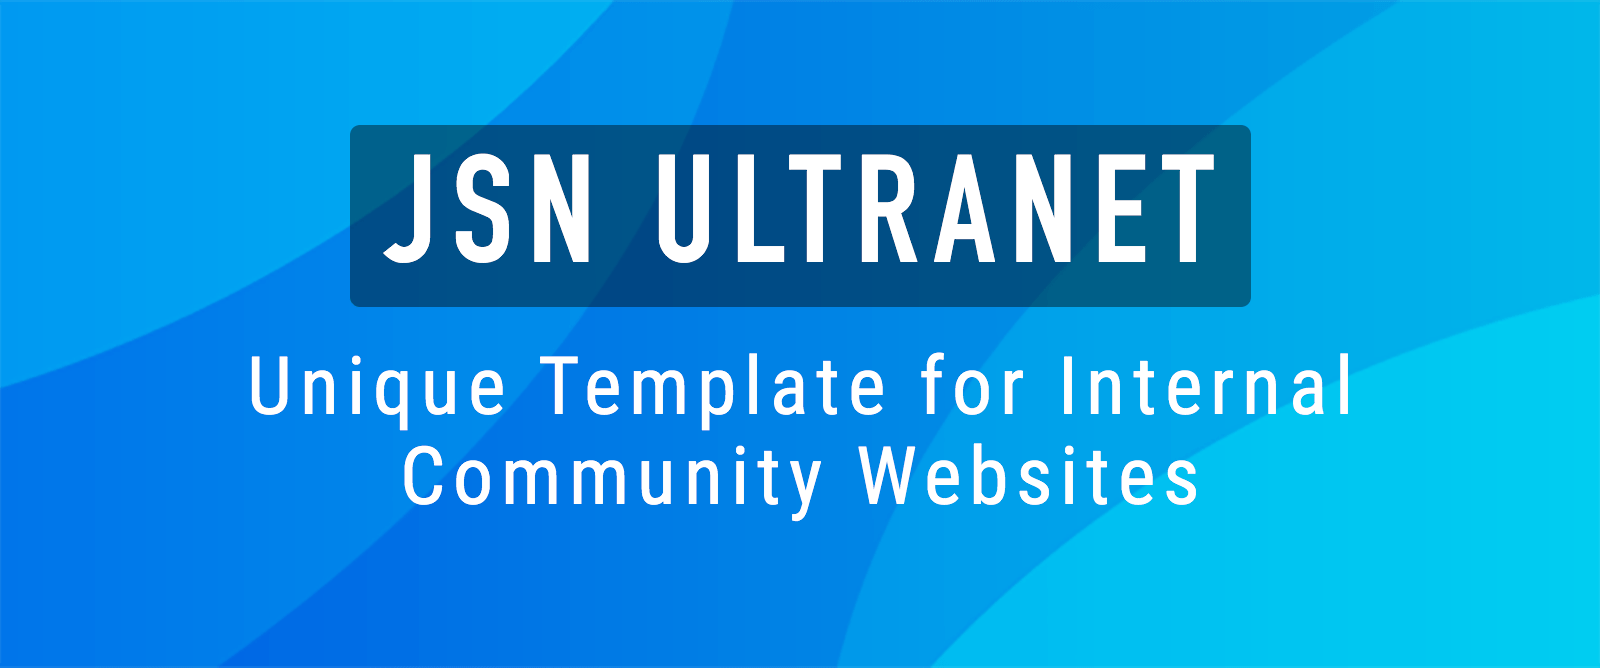 jsn-ultranet-blogbanner